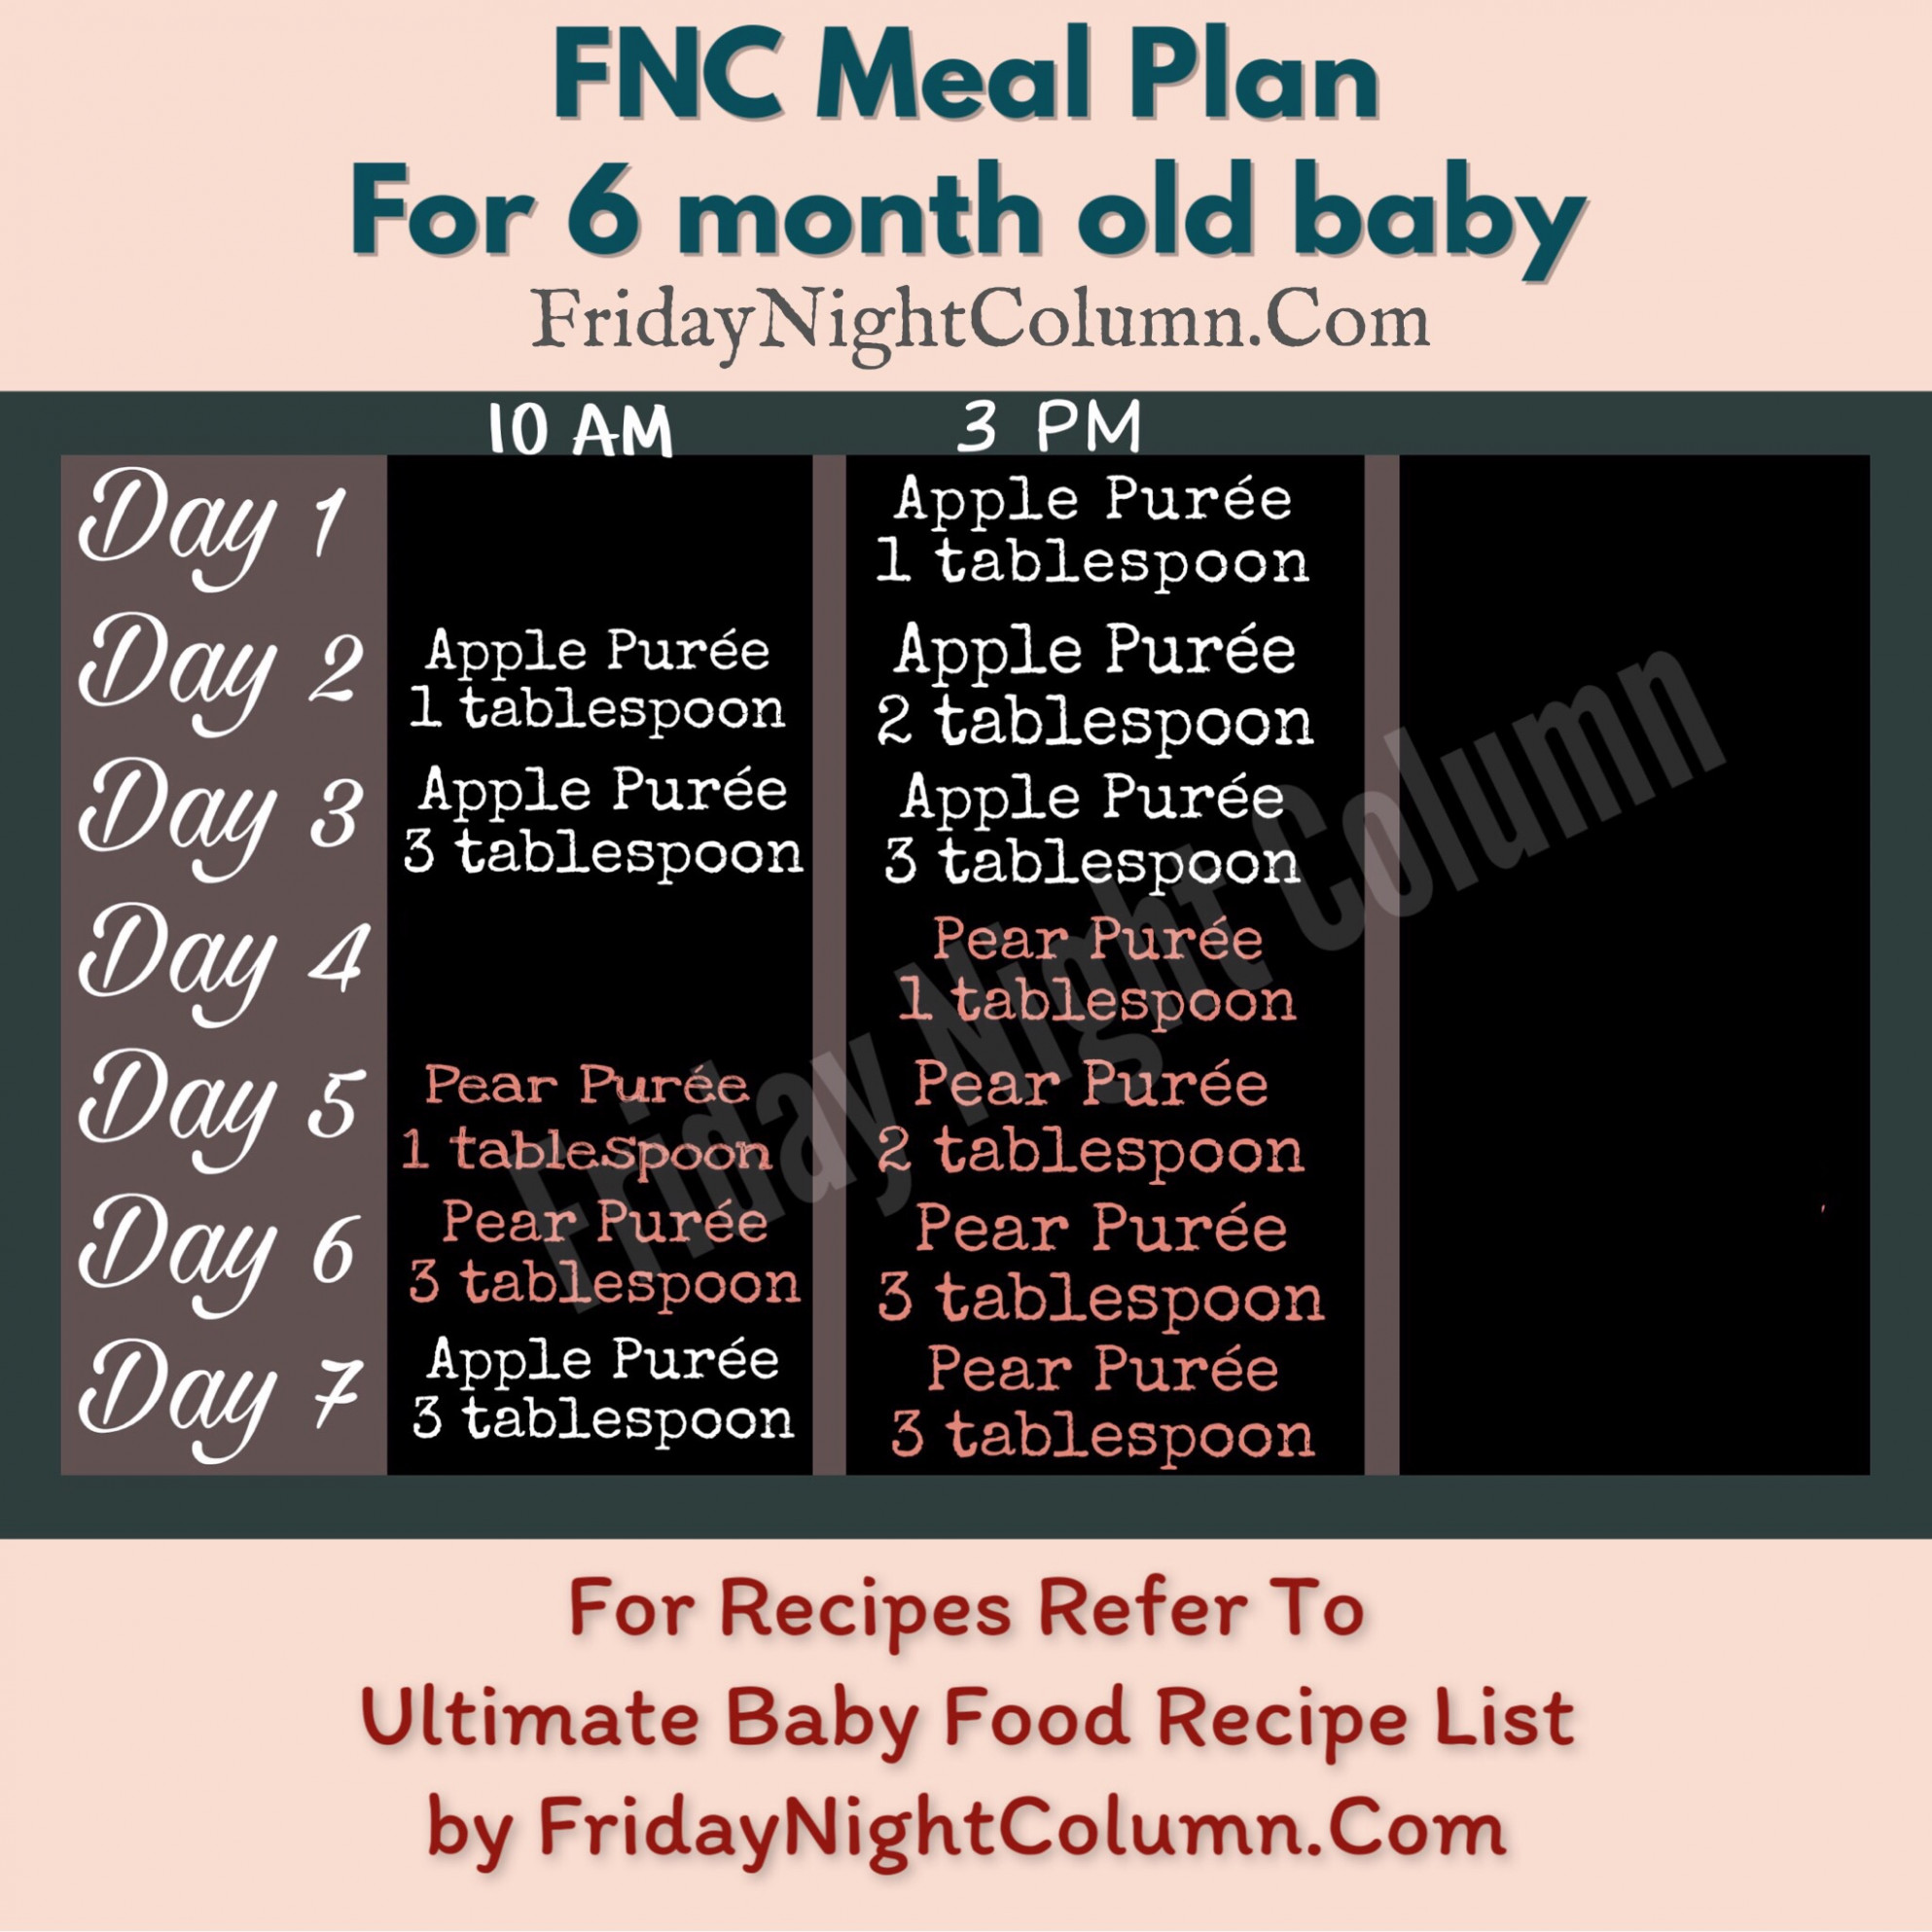 FNC Meal Plan For Babies 11 to 11 months – Friday Night Column - food recipes for 7 month old